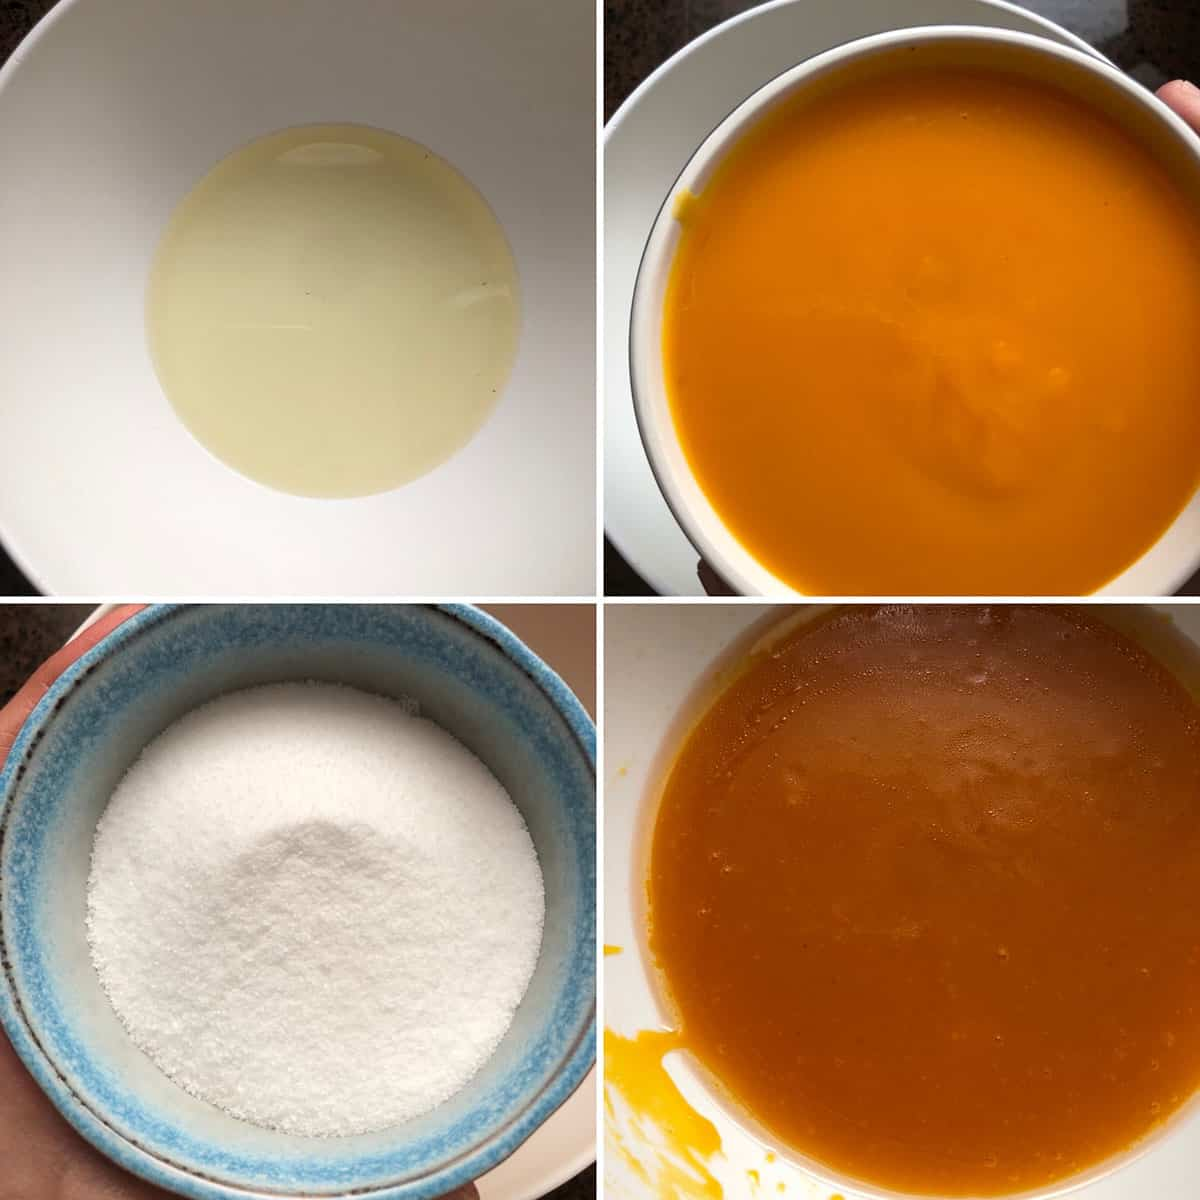 Wet Ingredients being added into a large bowl